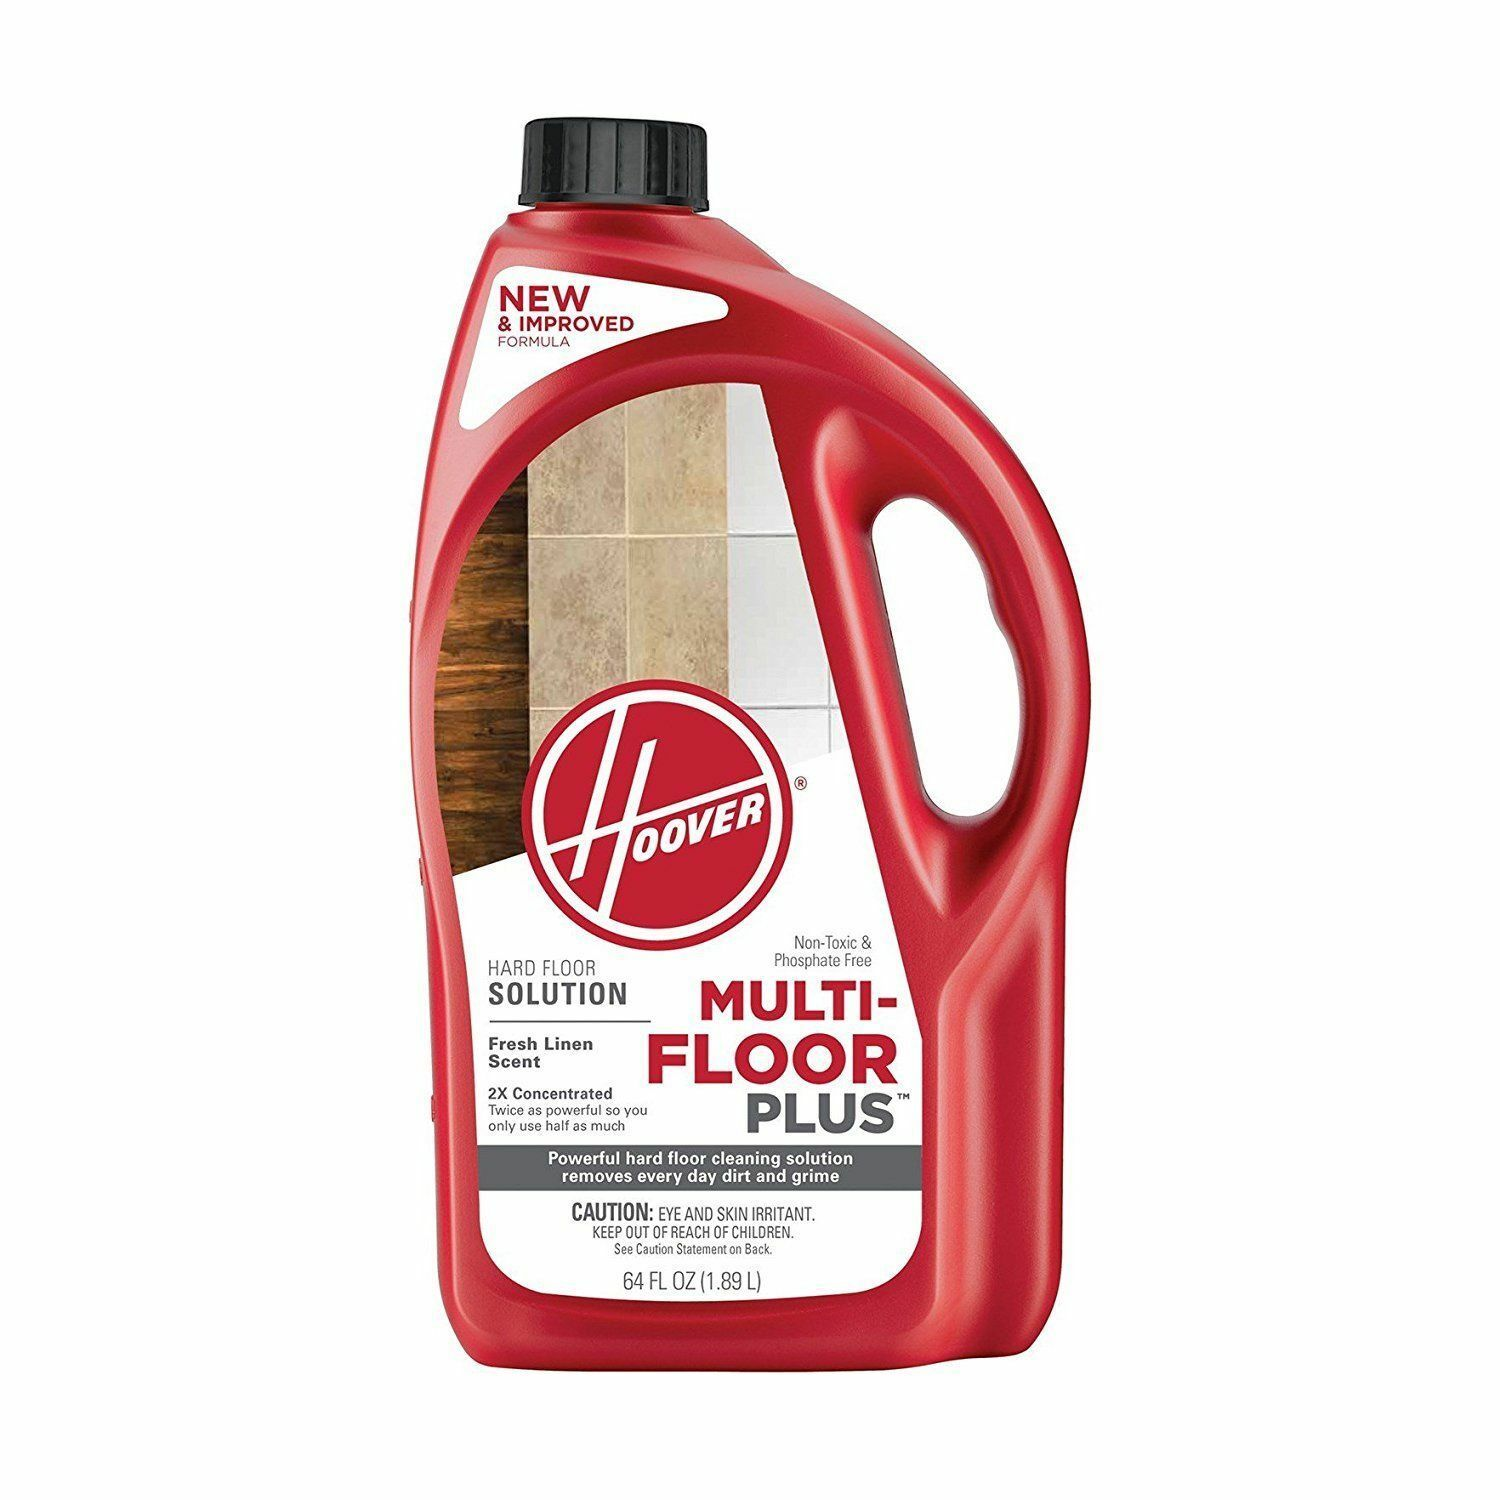 Hoover Multi-Floor Plus Hard Floor Cleaning Solution 64 fl o